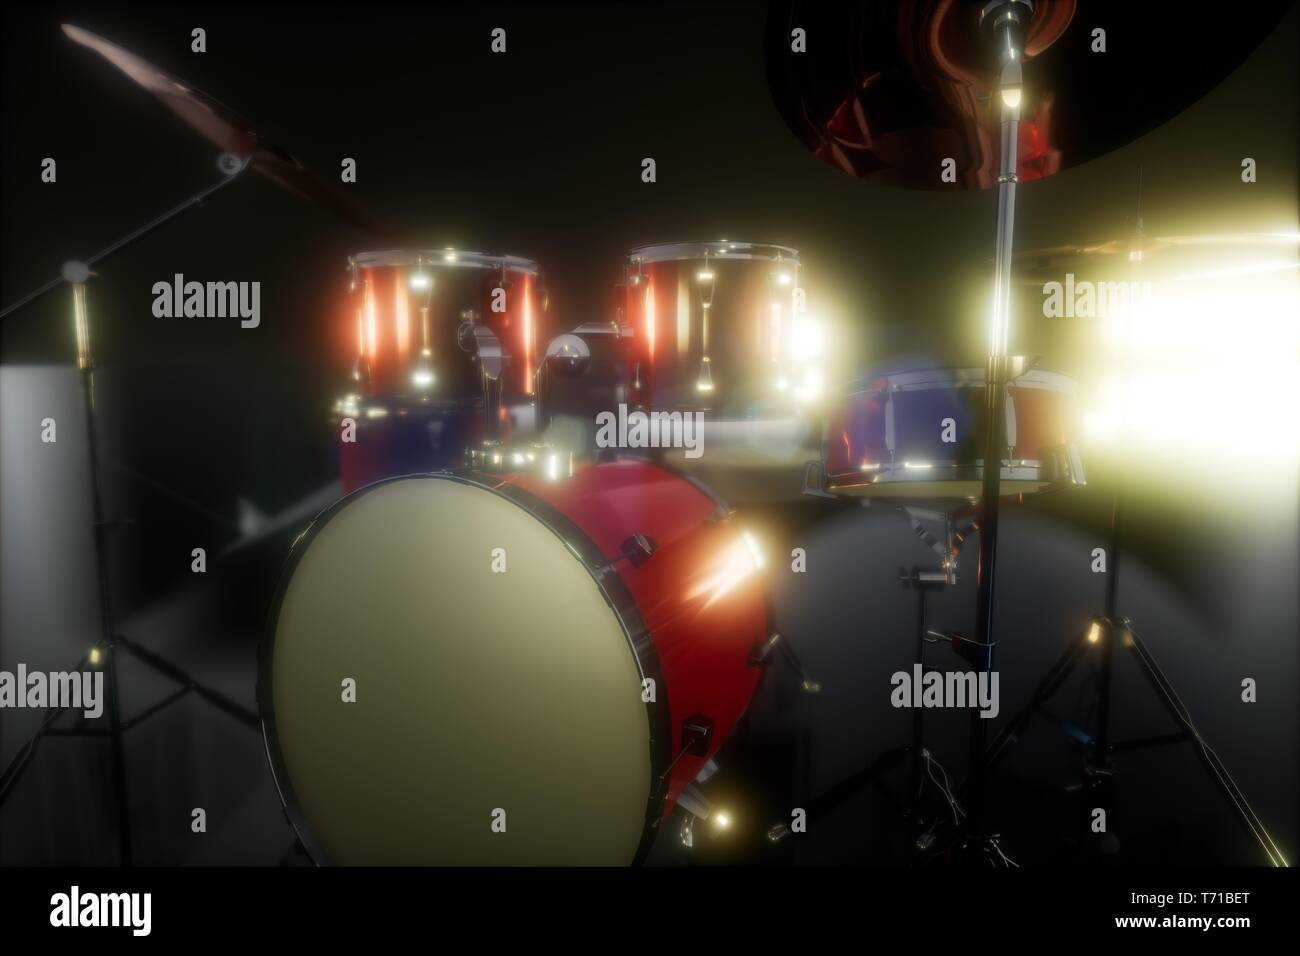 drum set with DOF and lense flair - Stock Image